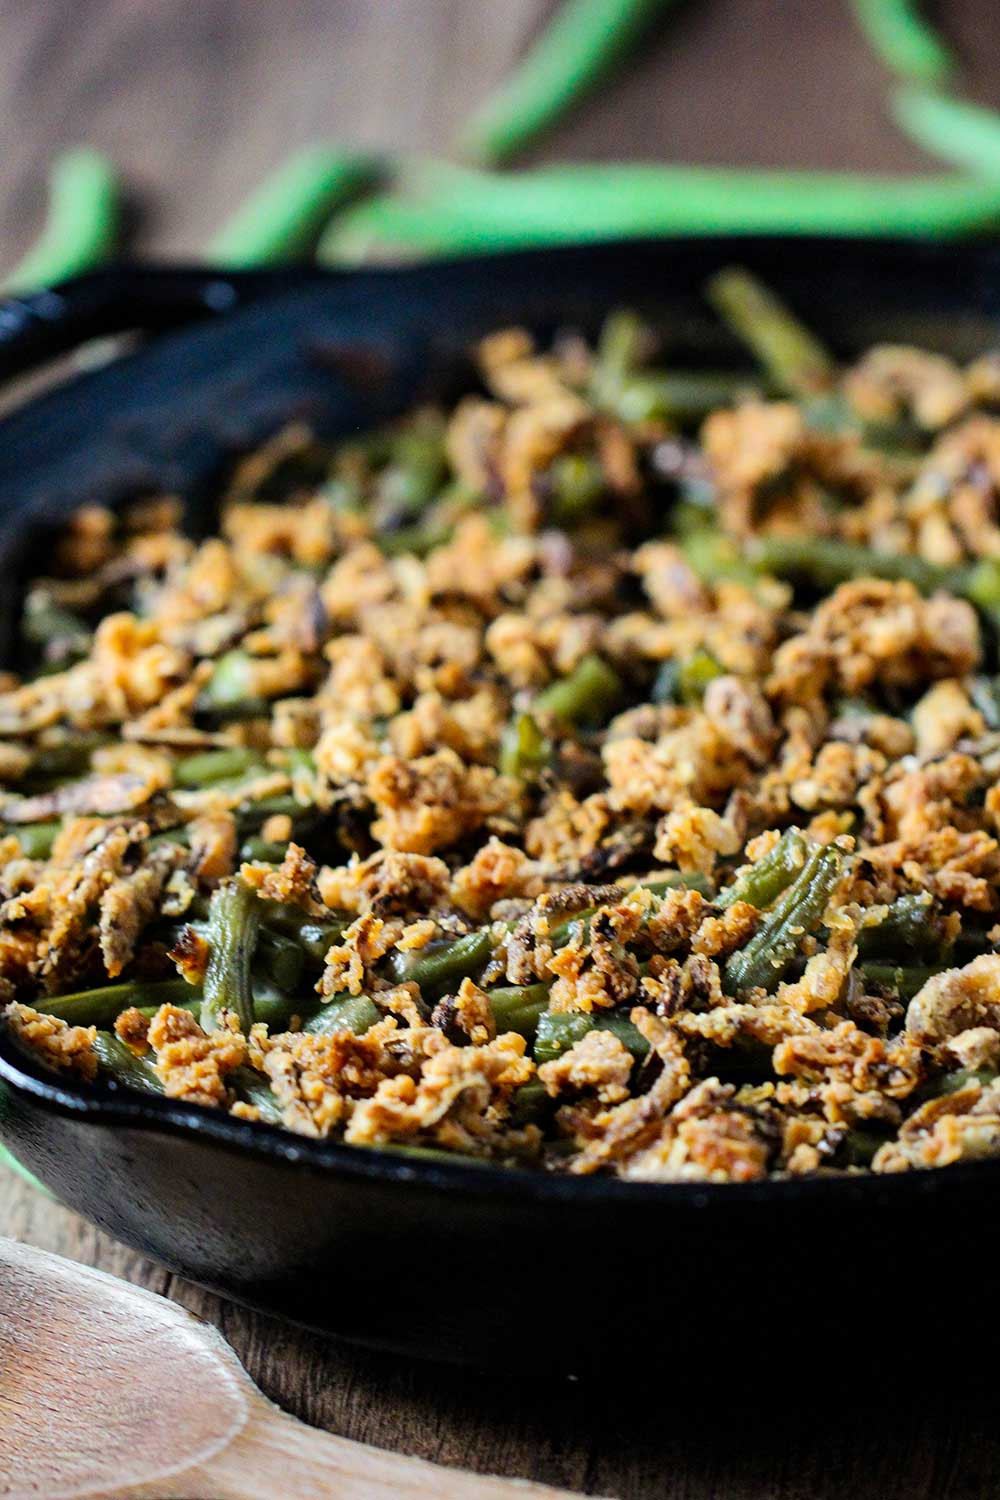 A large cast iron skillet holding gourmet green bean casserole with fresh green beans next to it.